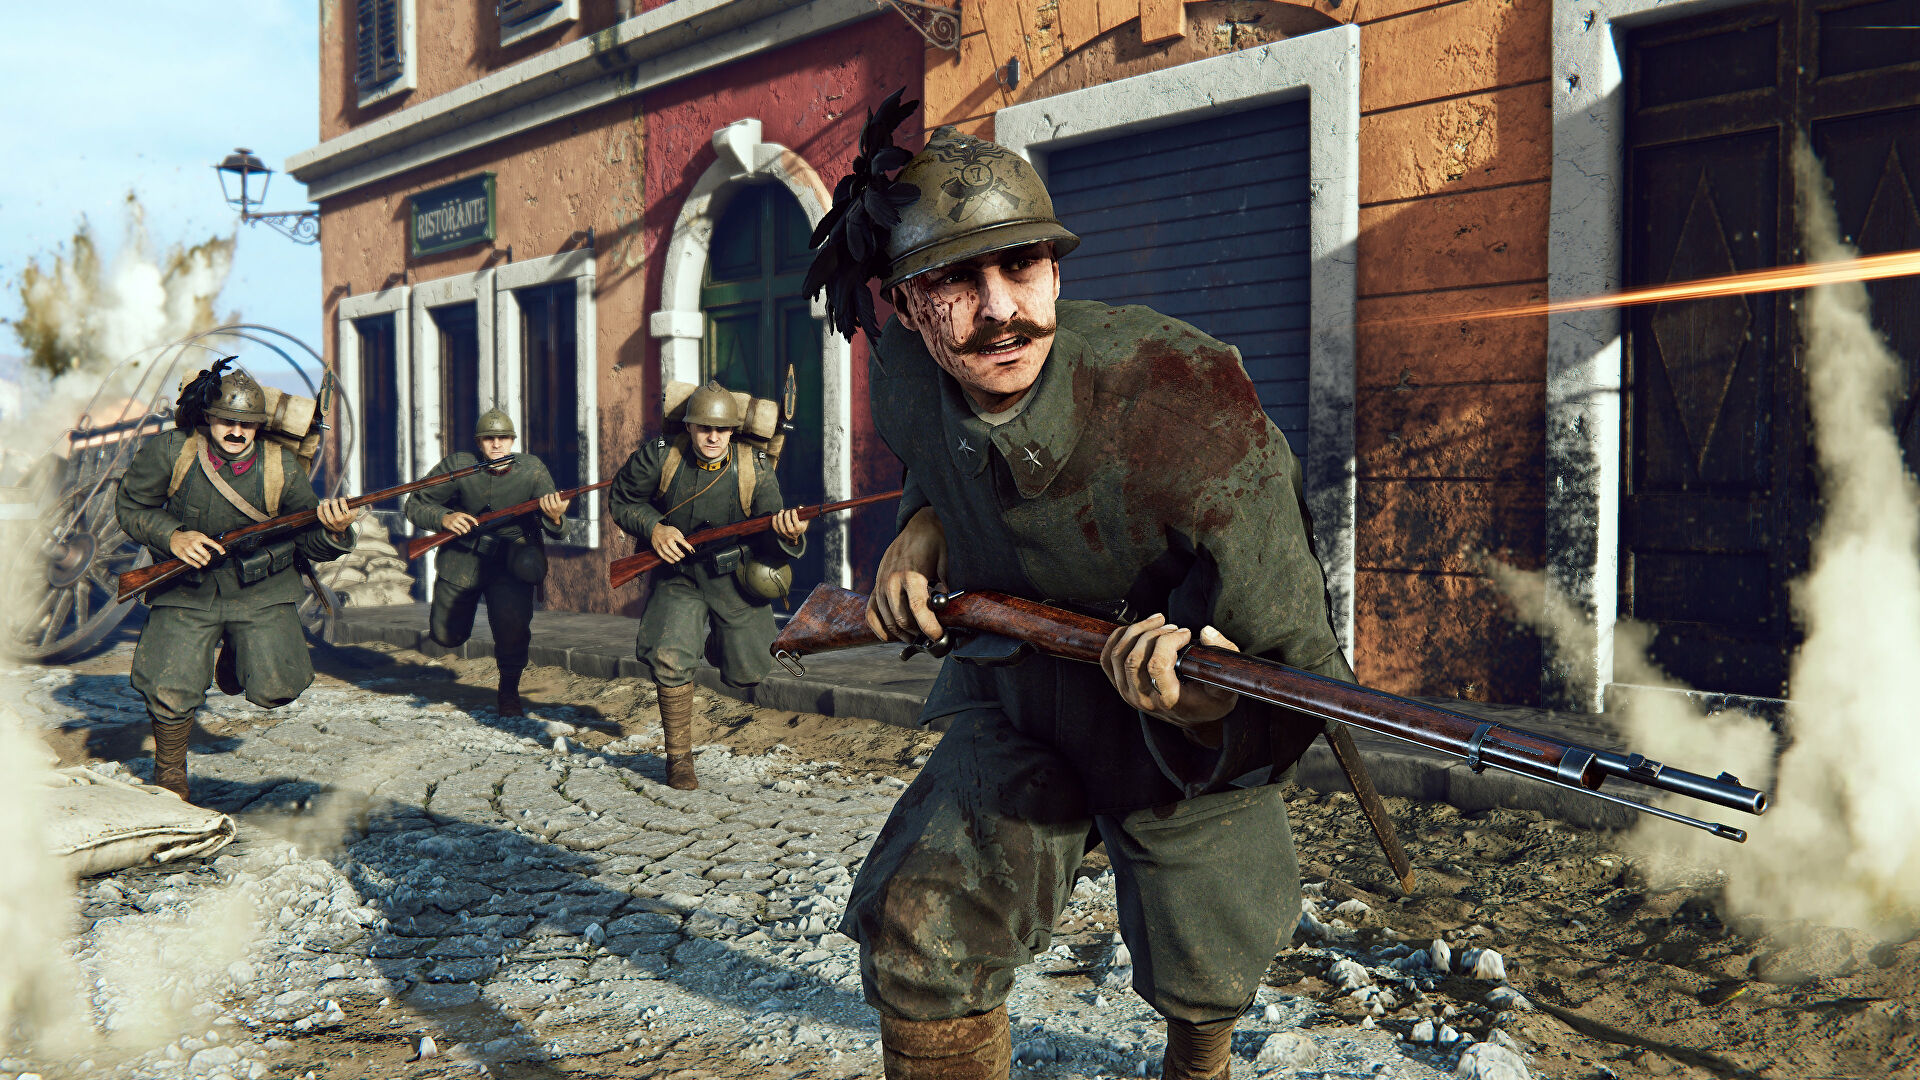 WW1 FPS Isonzo will continue the fight started by Verdun